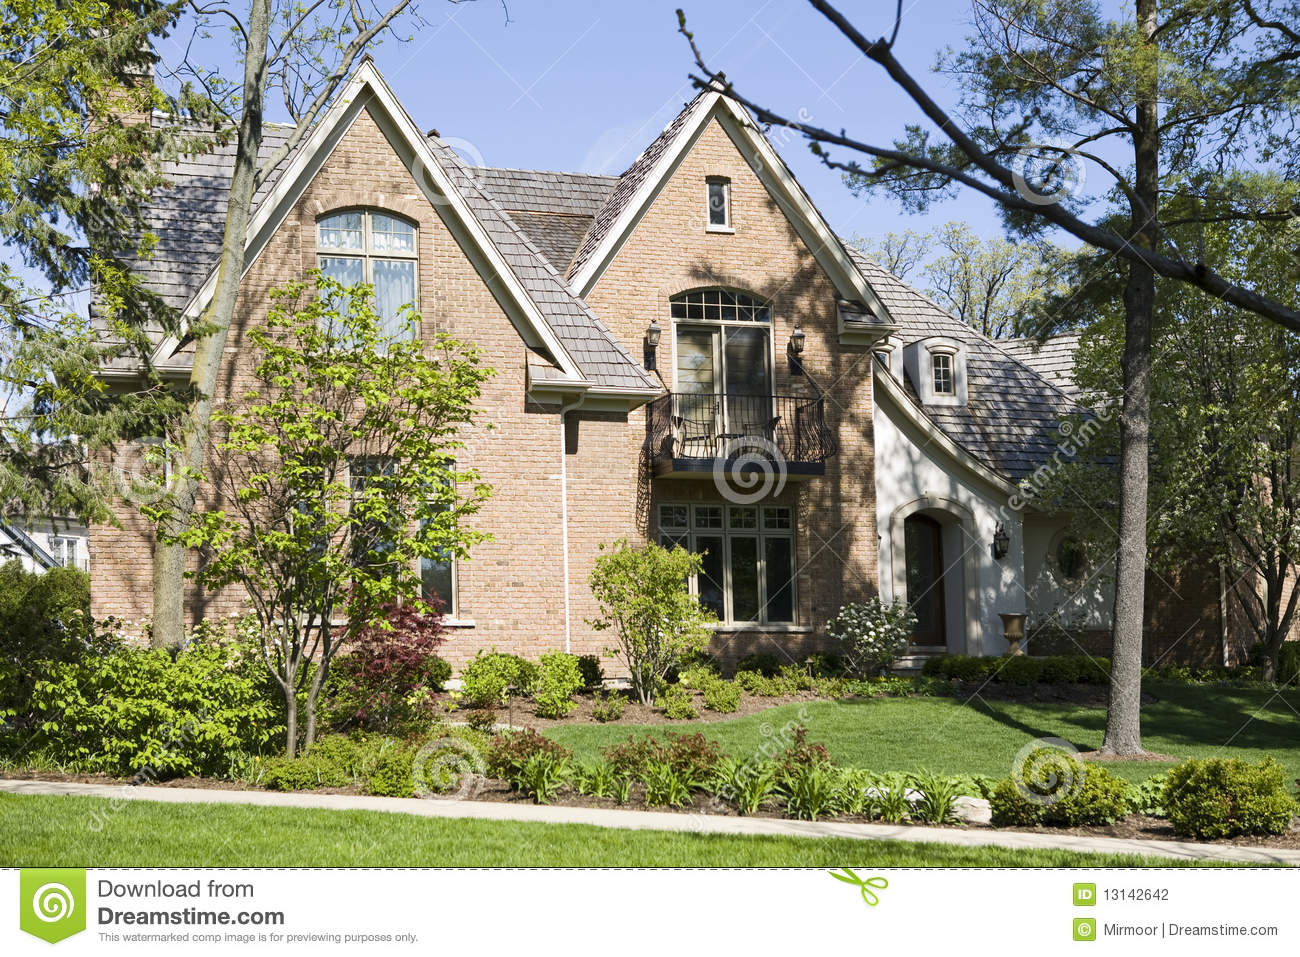 American Home And Garden Stock Photo Image Of Building